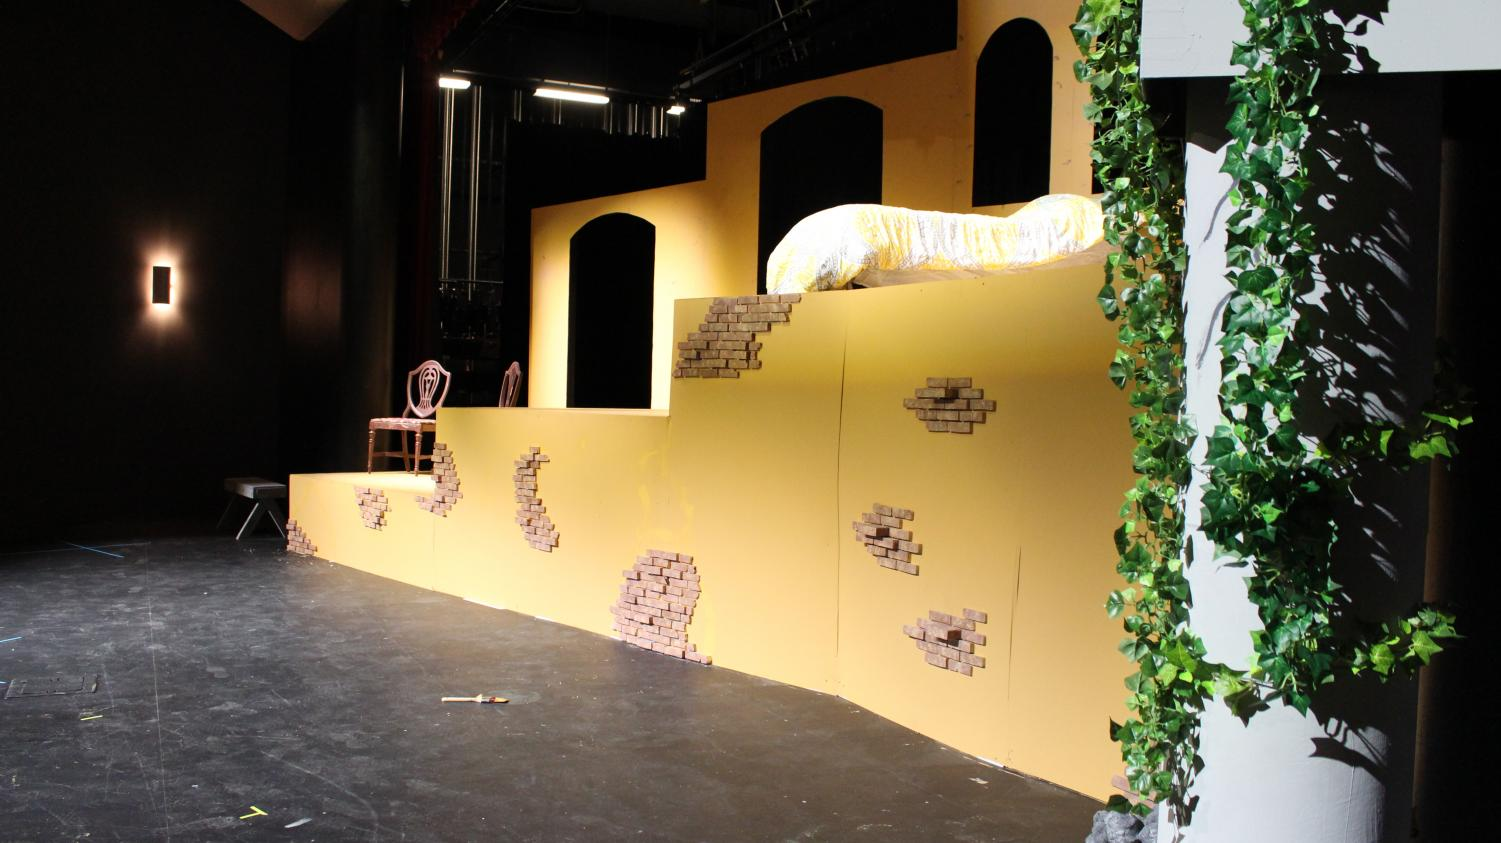 This set was created by students in the theatre program to be used for the play. The actors were able to utilize the set in many ways to demonstrate different settings. For example, one section of the set was Juliet's bedroom, while another portion was used as the balcony.